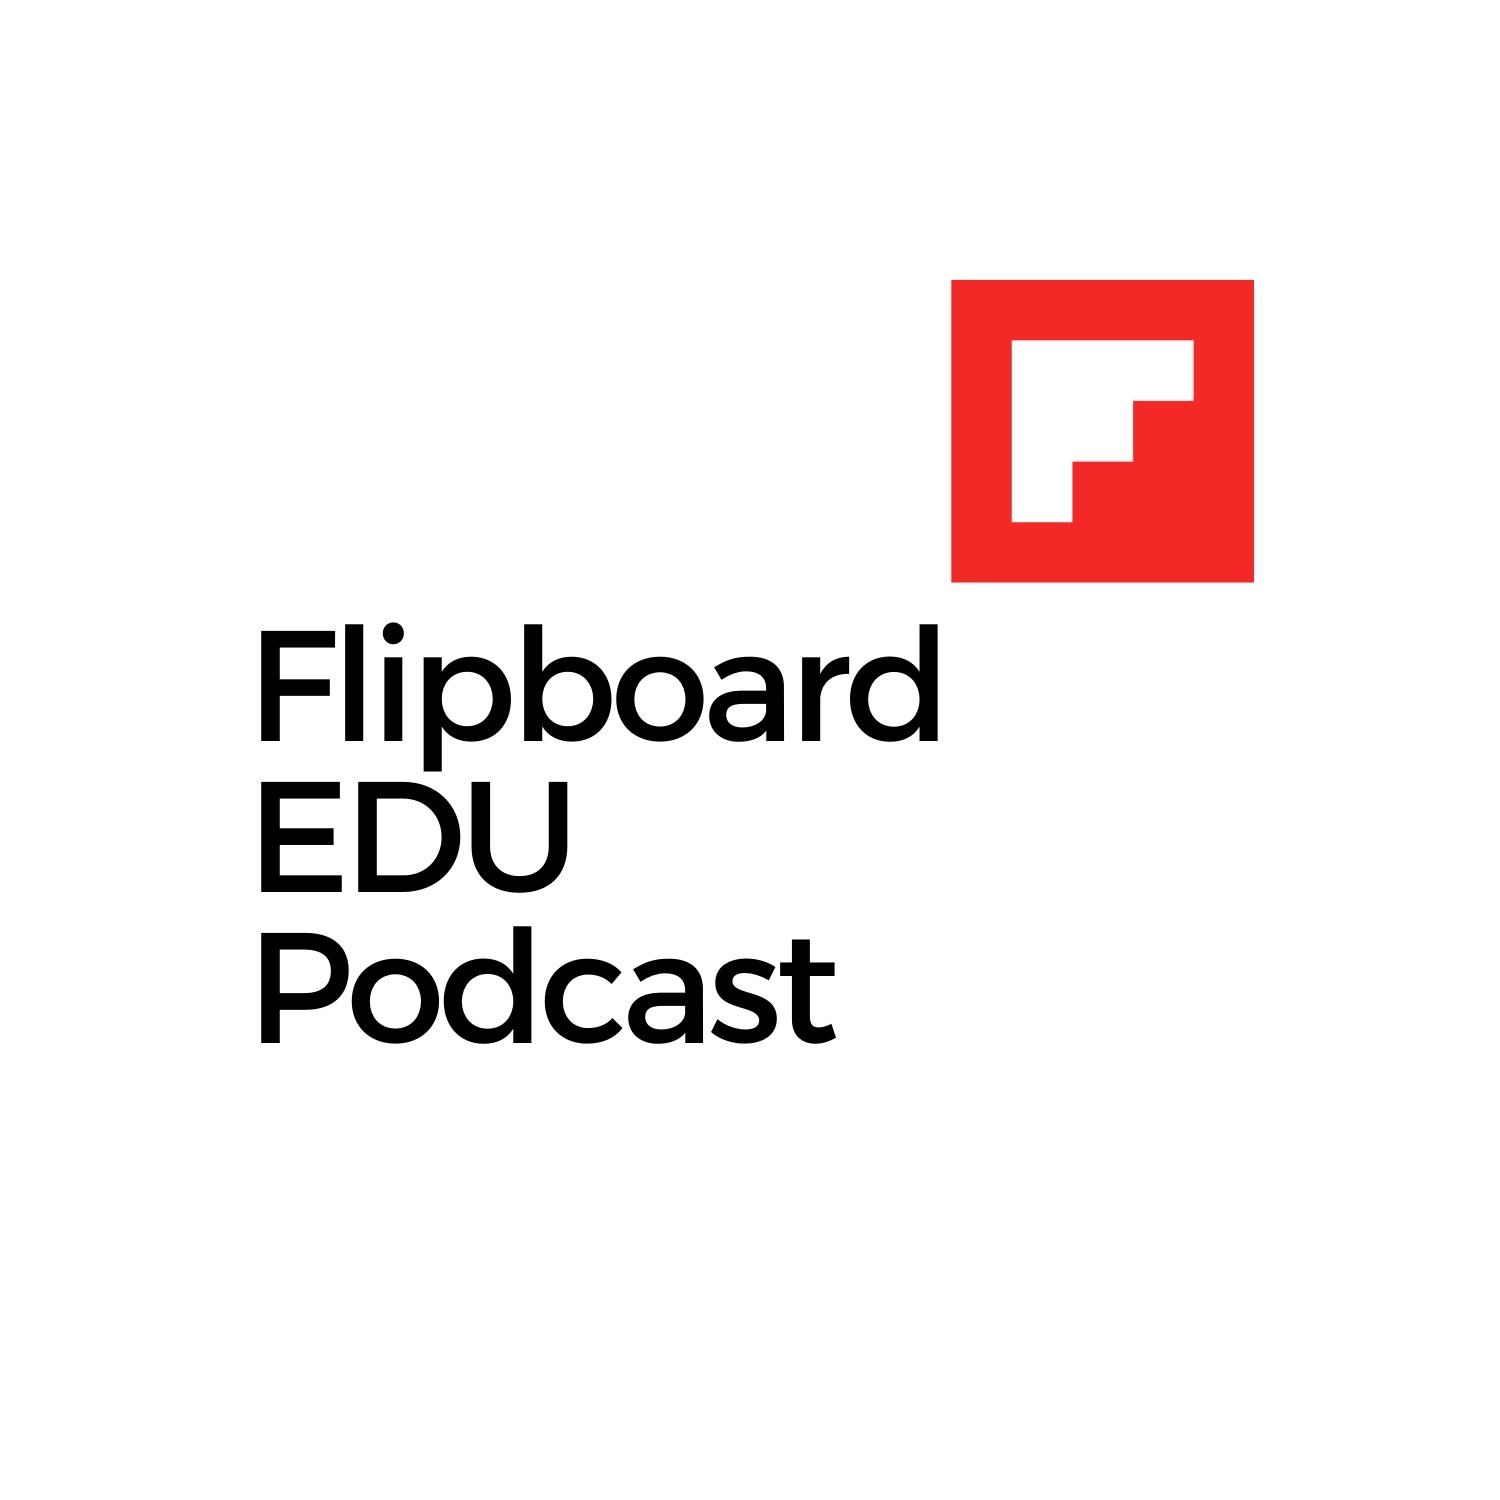 Flipboard EDU Podcast Episode 9 : Social-Emotional Learning with Shelly Terrell